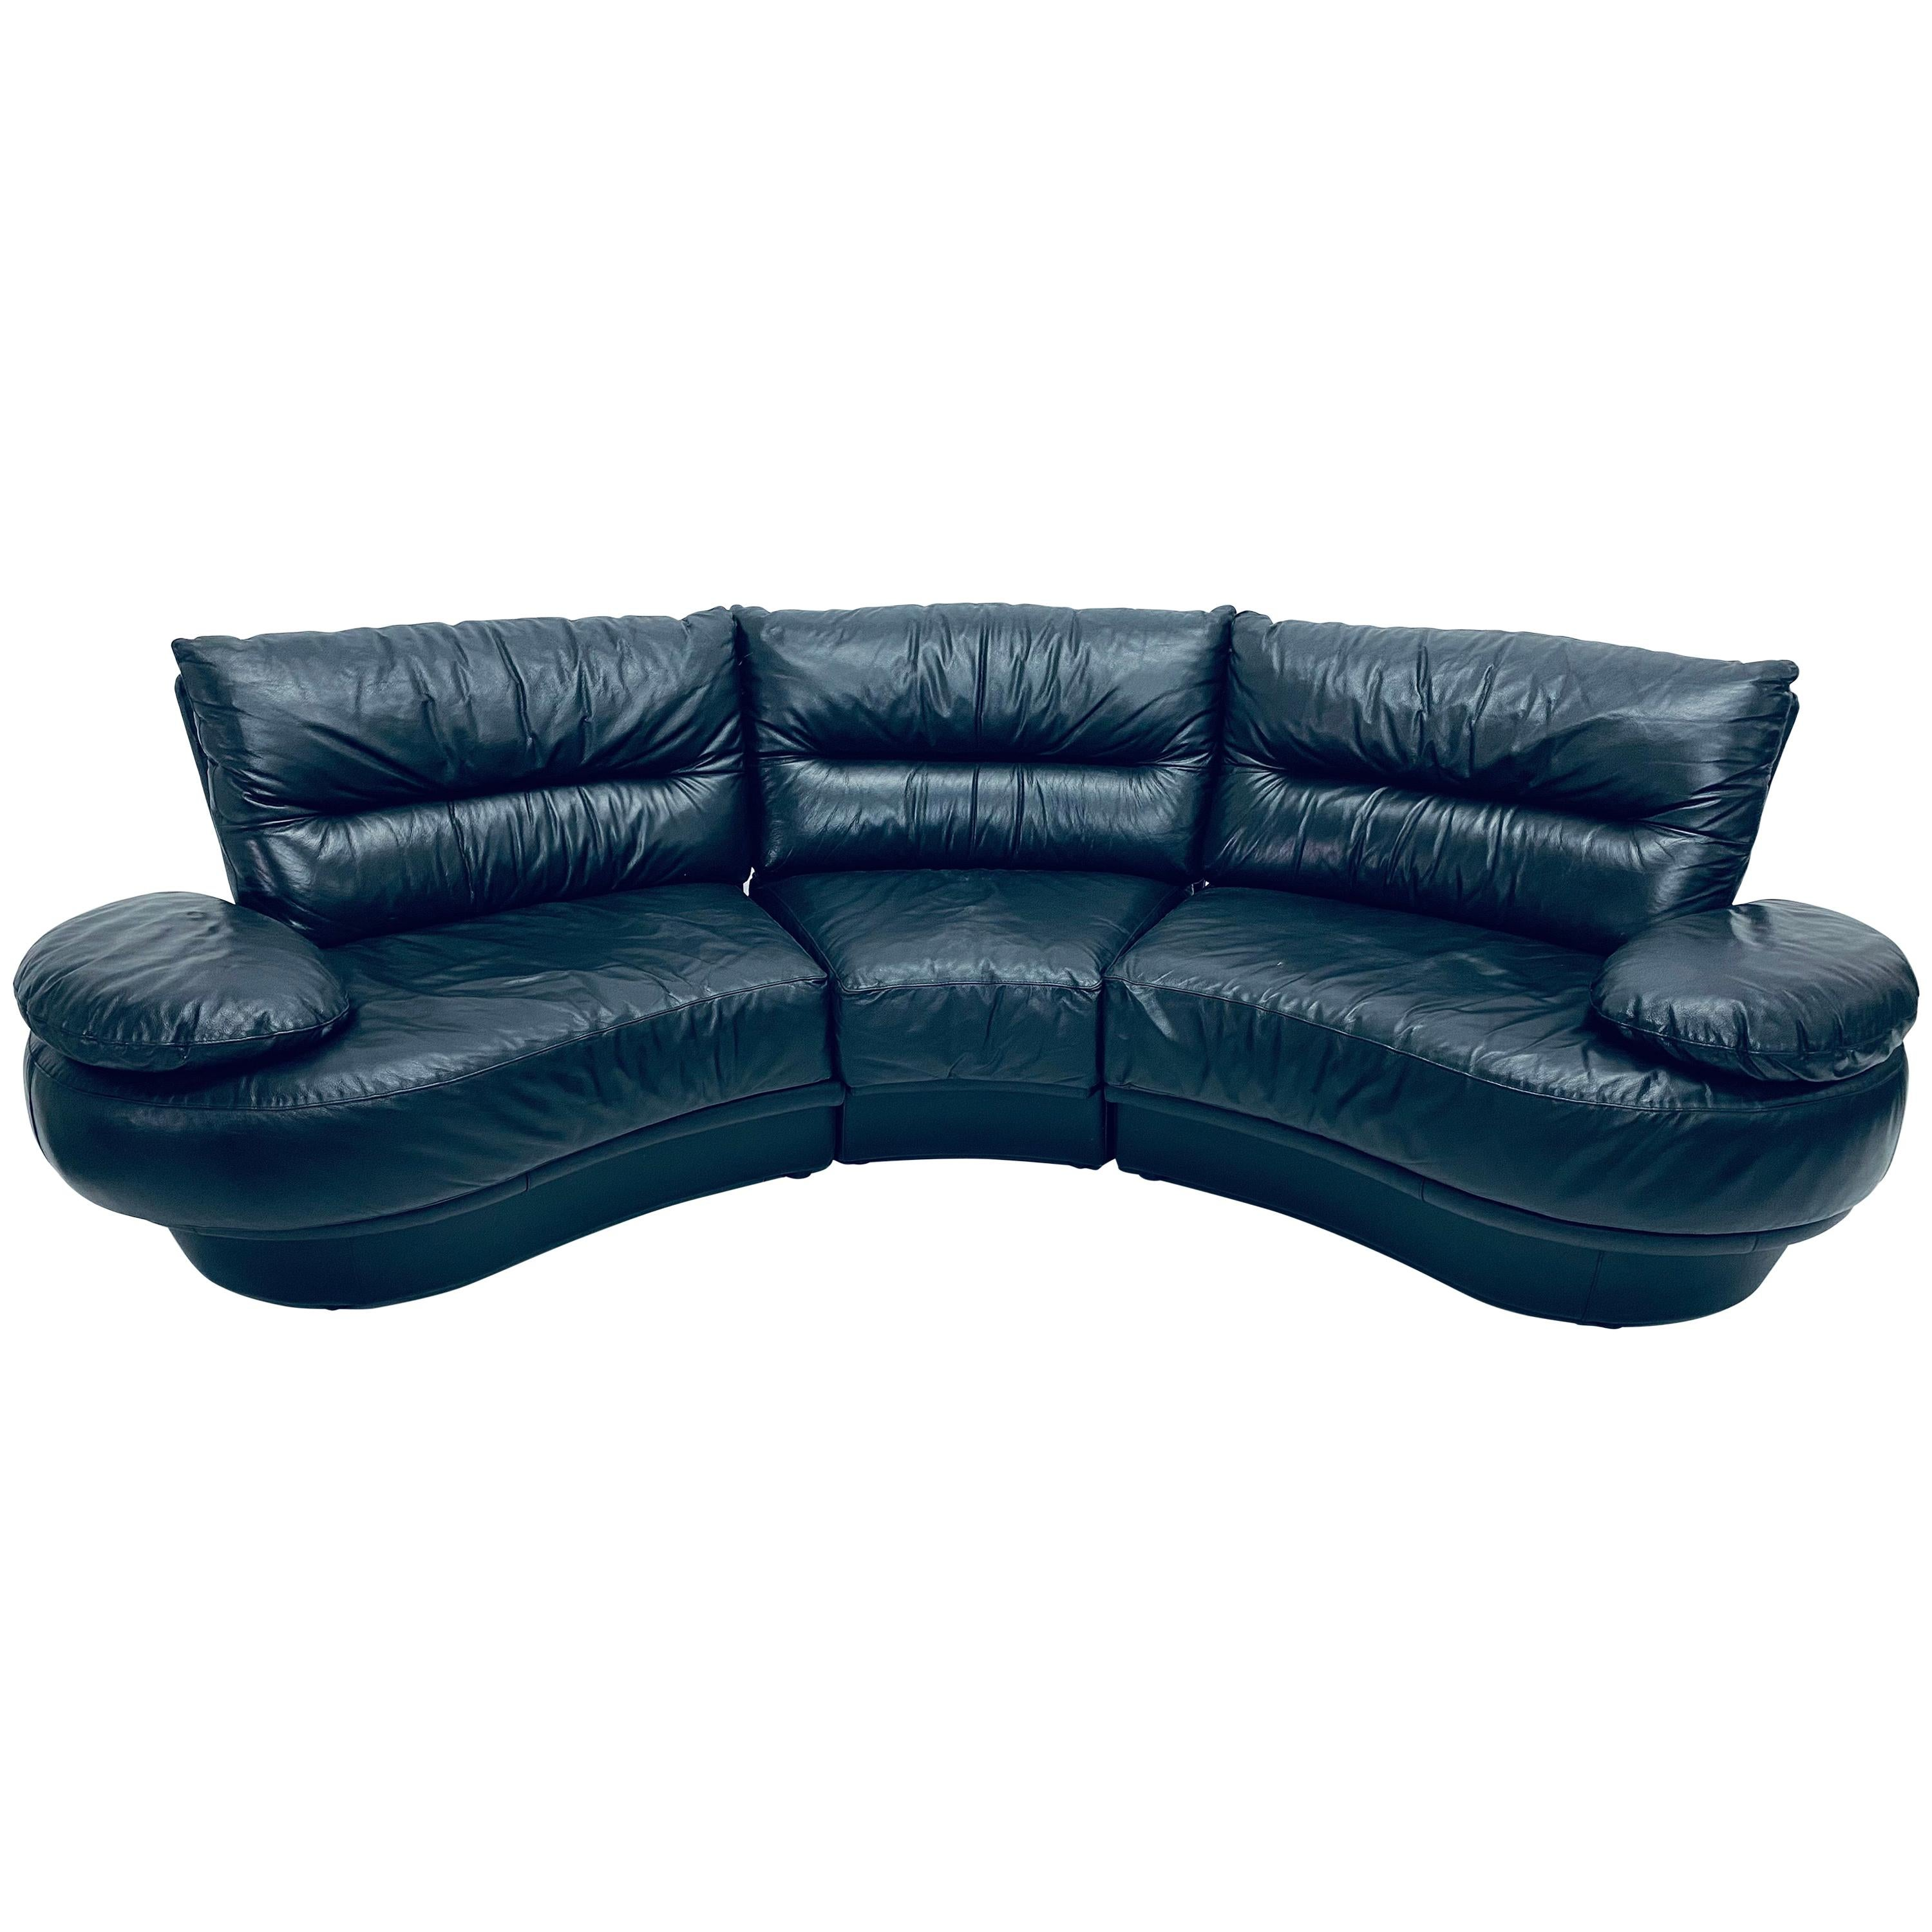 Wilma Salotti Postmodern Black Leather Rounded Back Sectional Sofa, Italy, 1980s